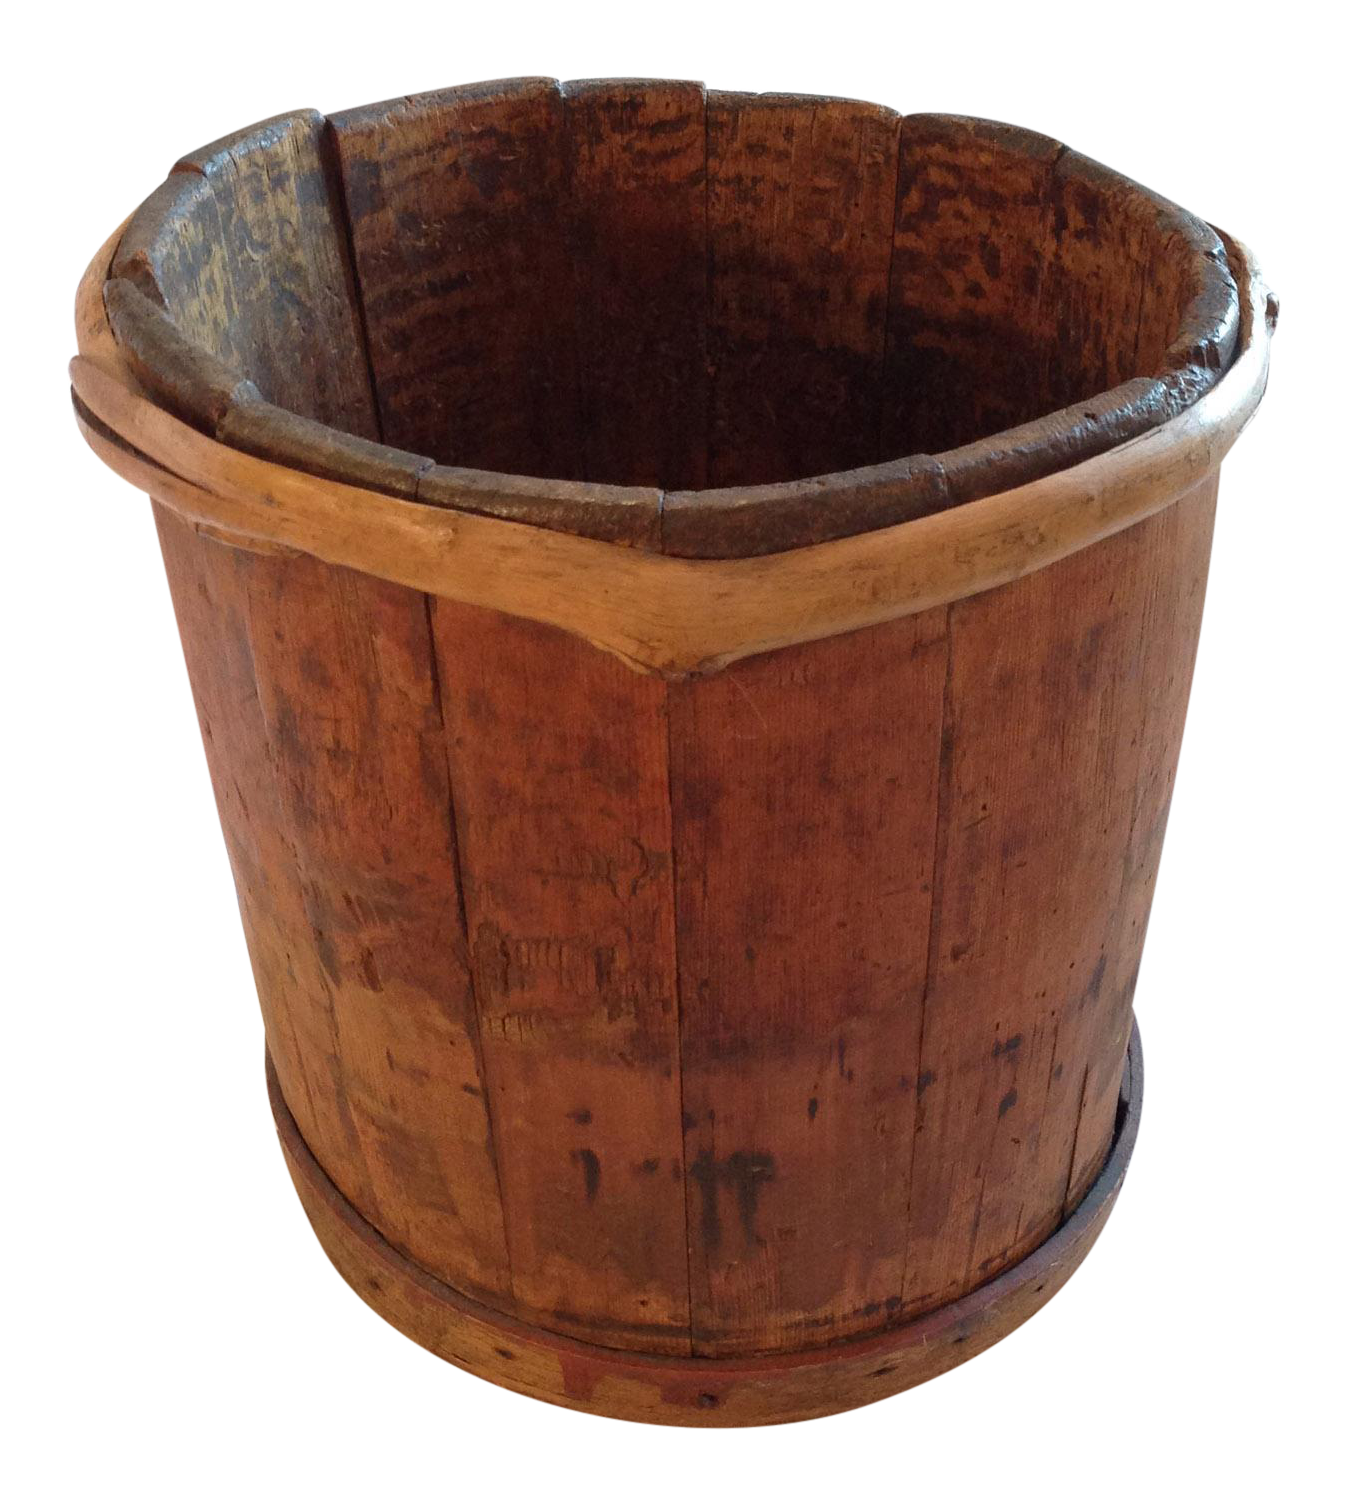 Wooden bucket png. Antique with unique vine